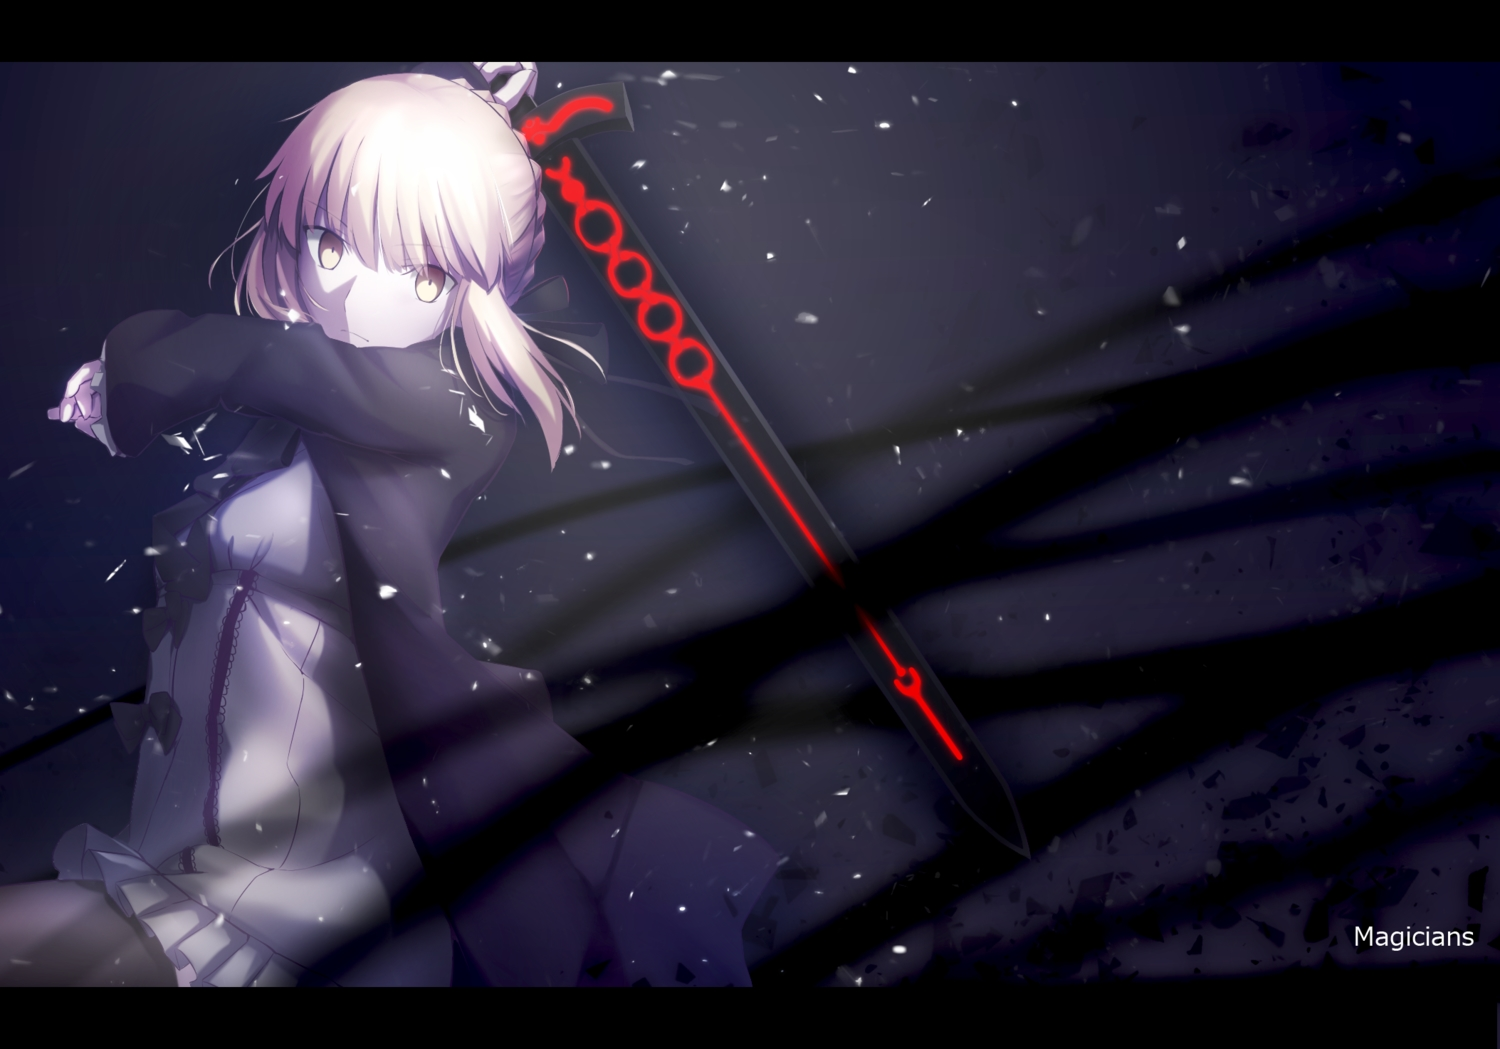 artoria_pendragon_(all) blonde_hair fate_(series) fate/stay_night fate/unlimited_codes magicians pantyhose polychromatic saber saber_alter sword watermark weapon yellow_eyes